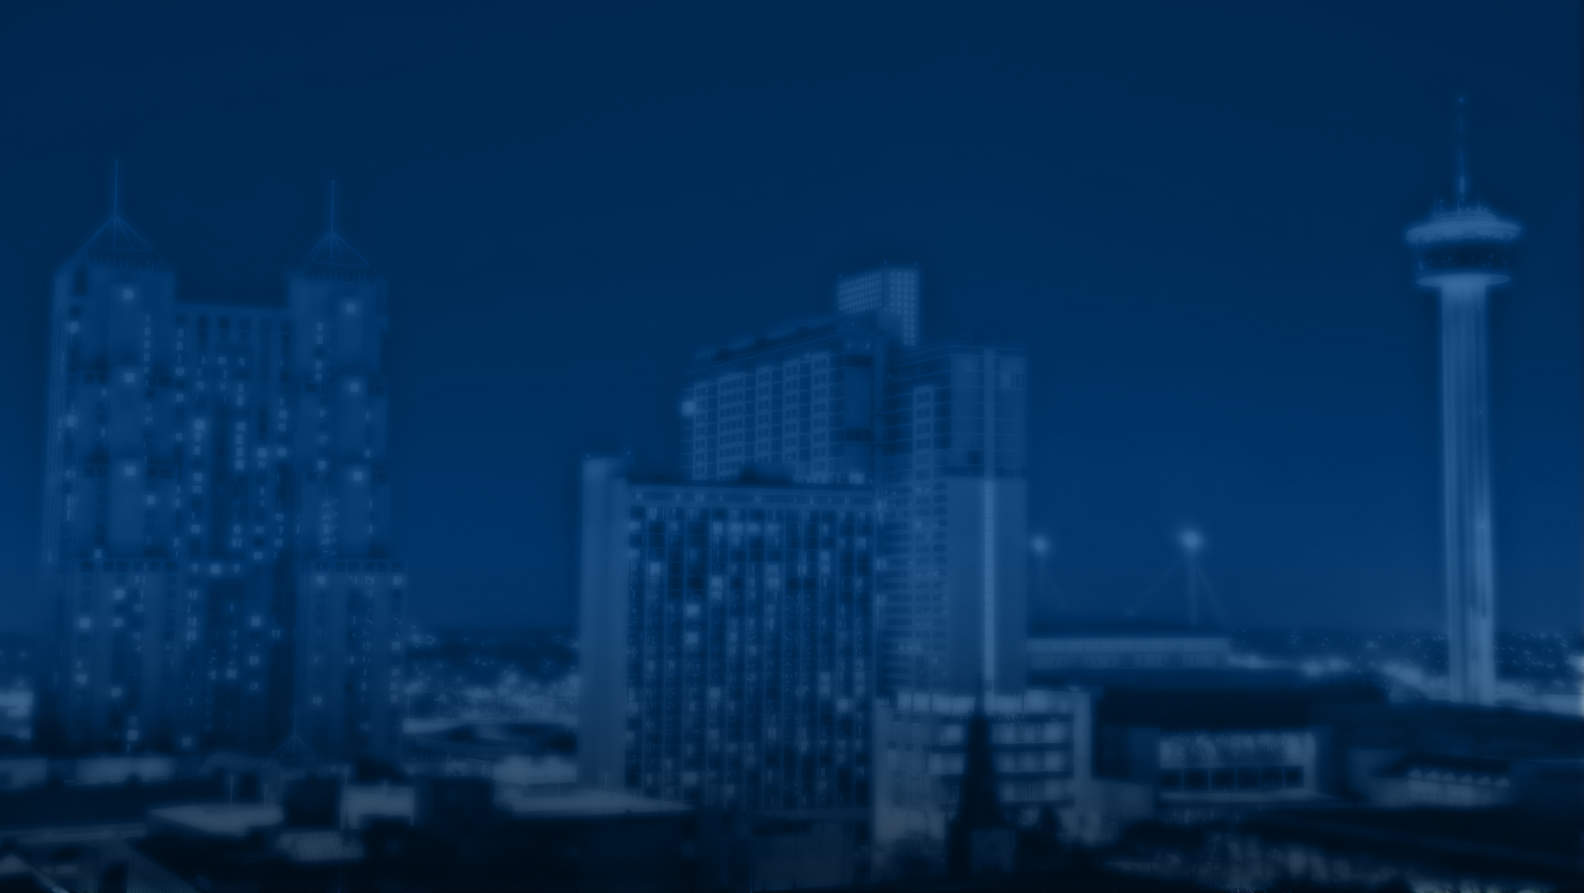 Commercial Security Systems in San Antonio